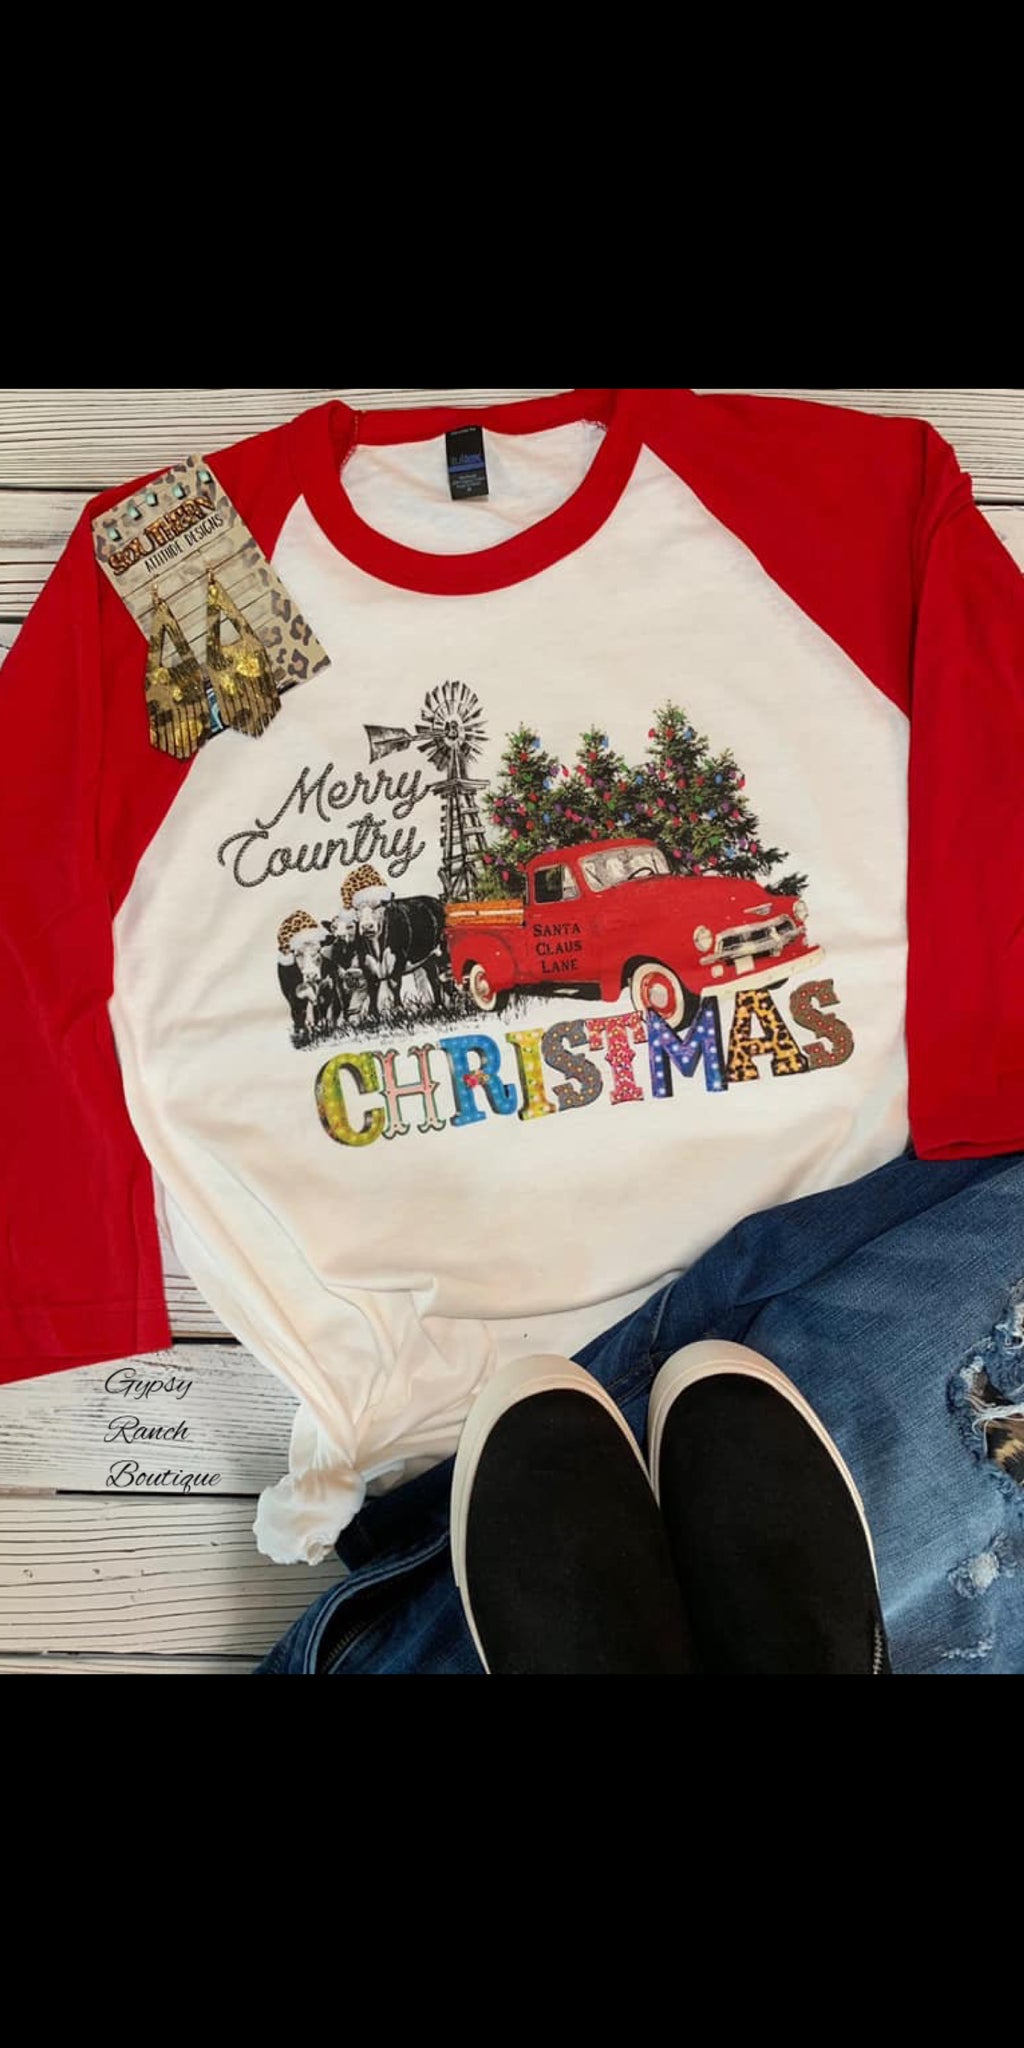 Merry Country Christmas Top - Also in Plus Size